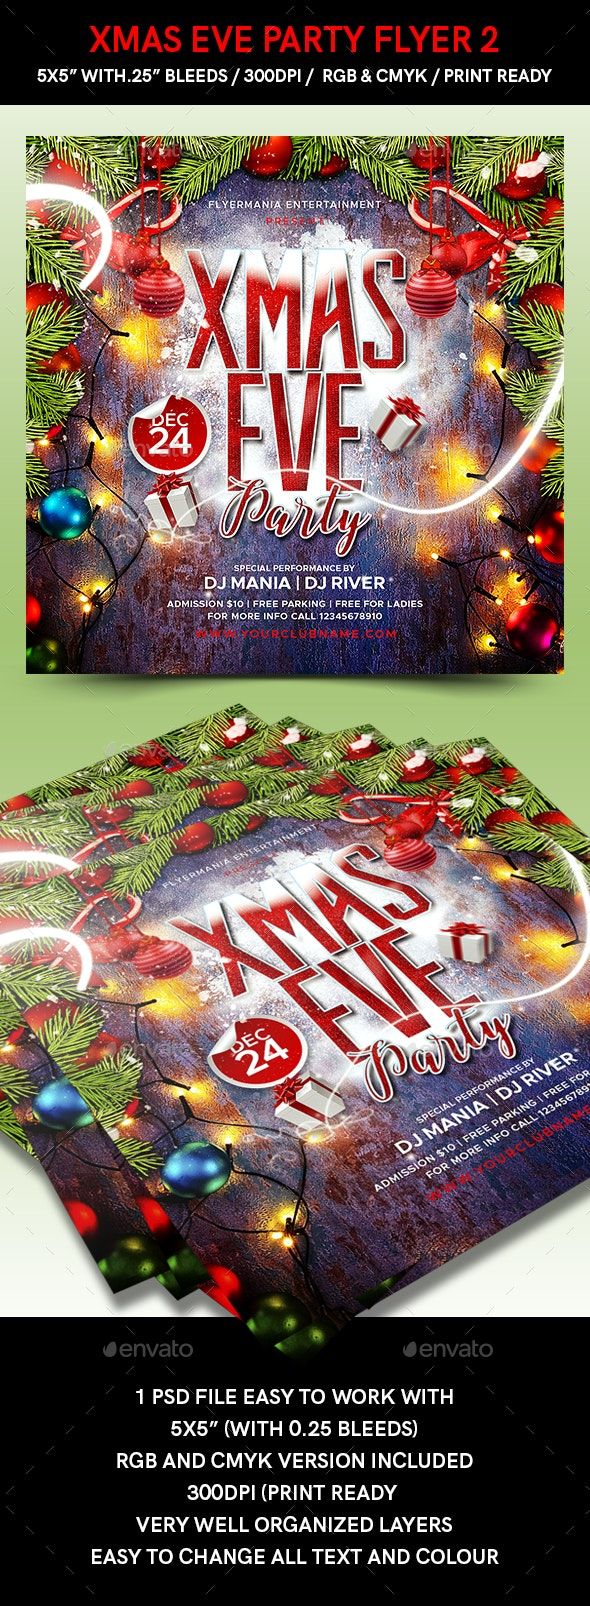 Xmas Eve Party Flyer 2 - Flyers Print Templates